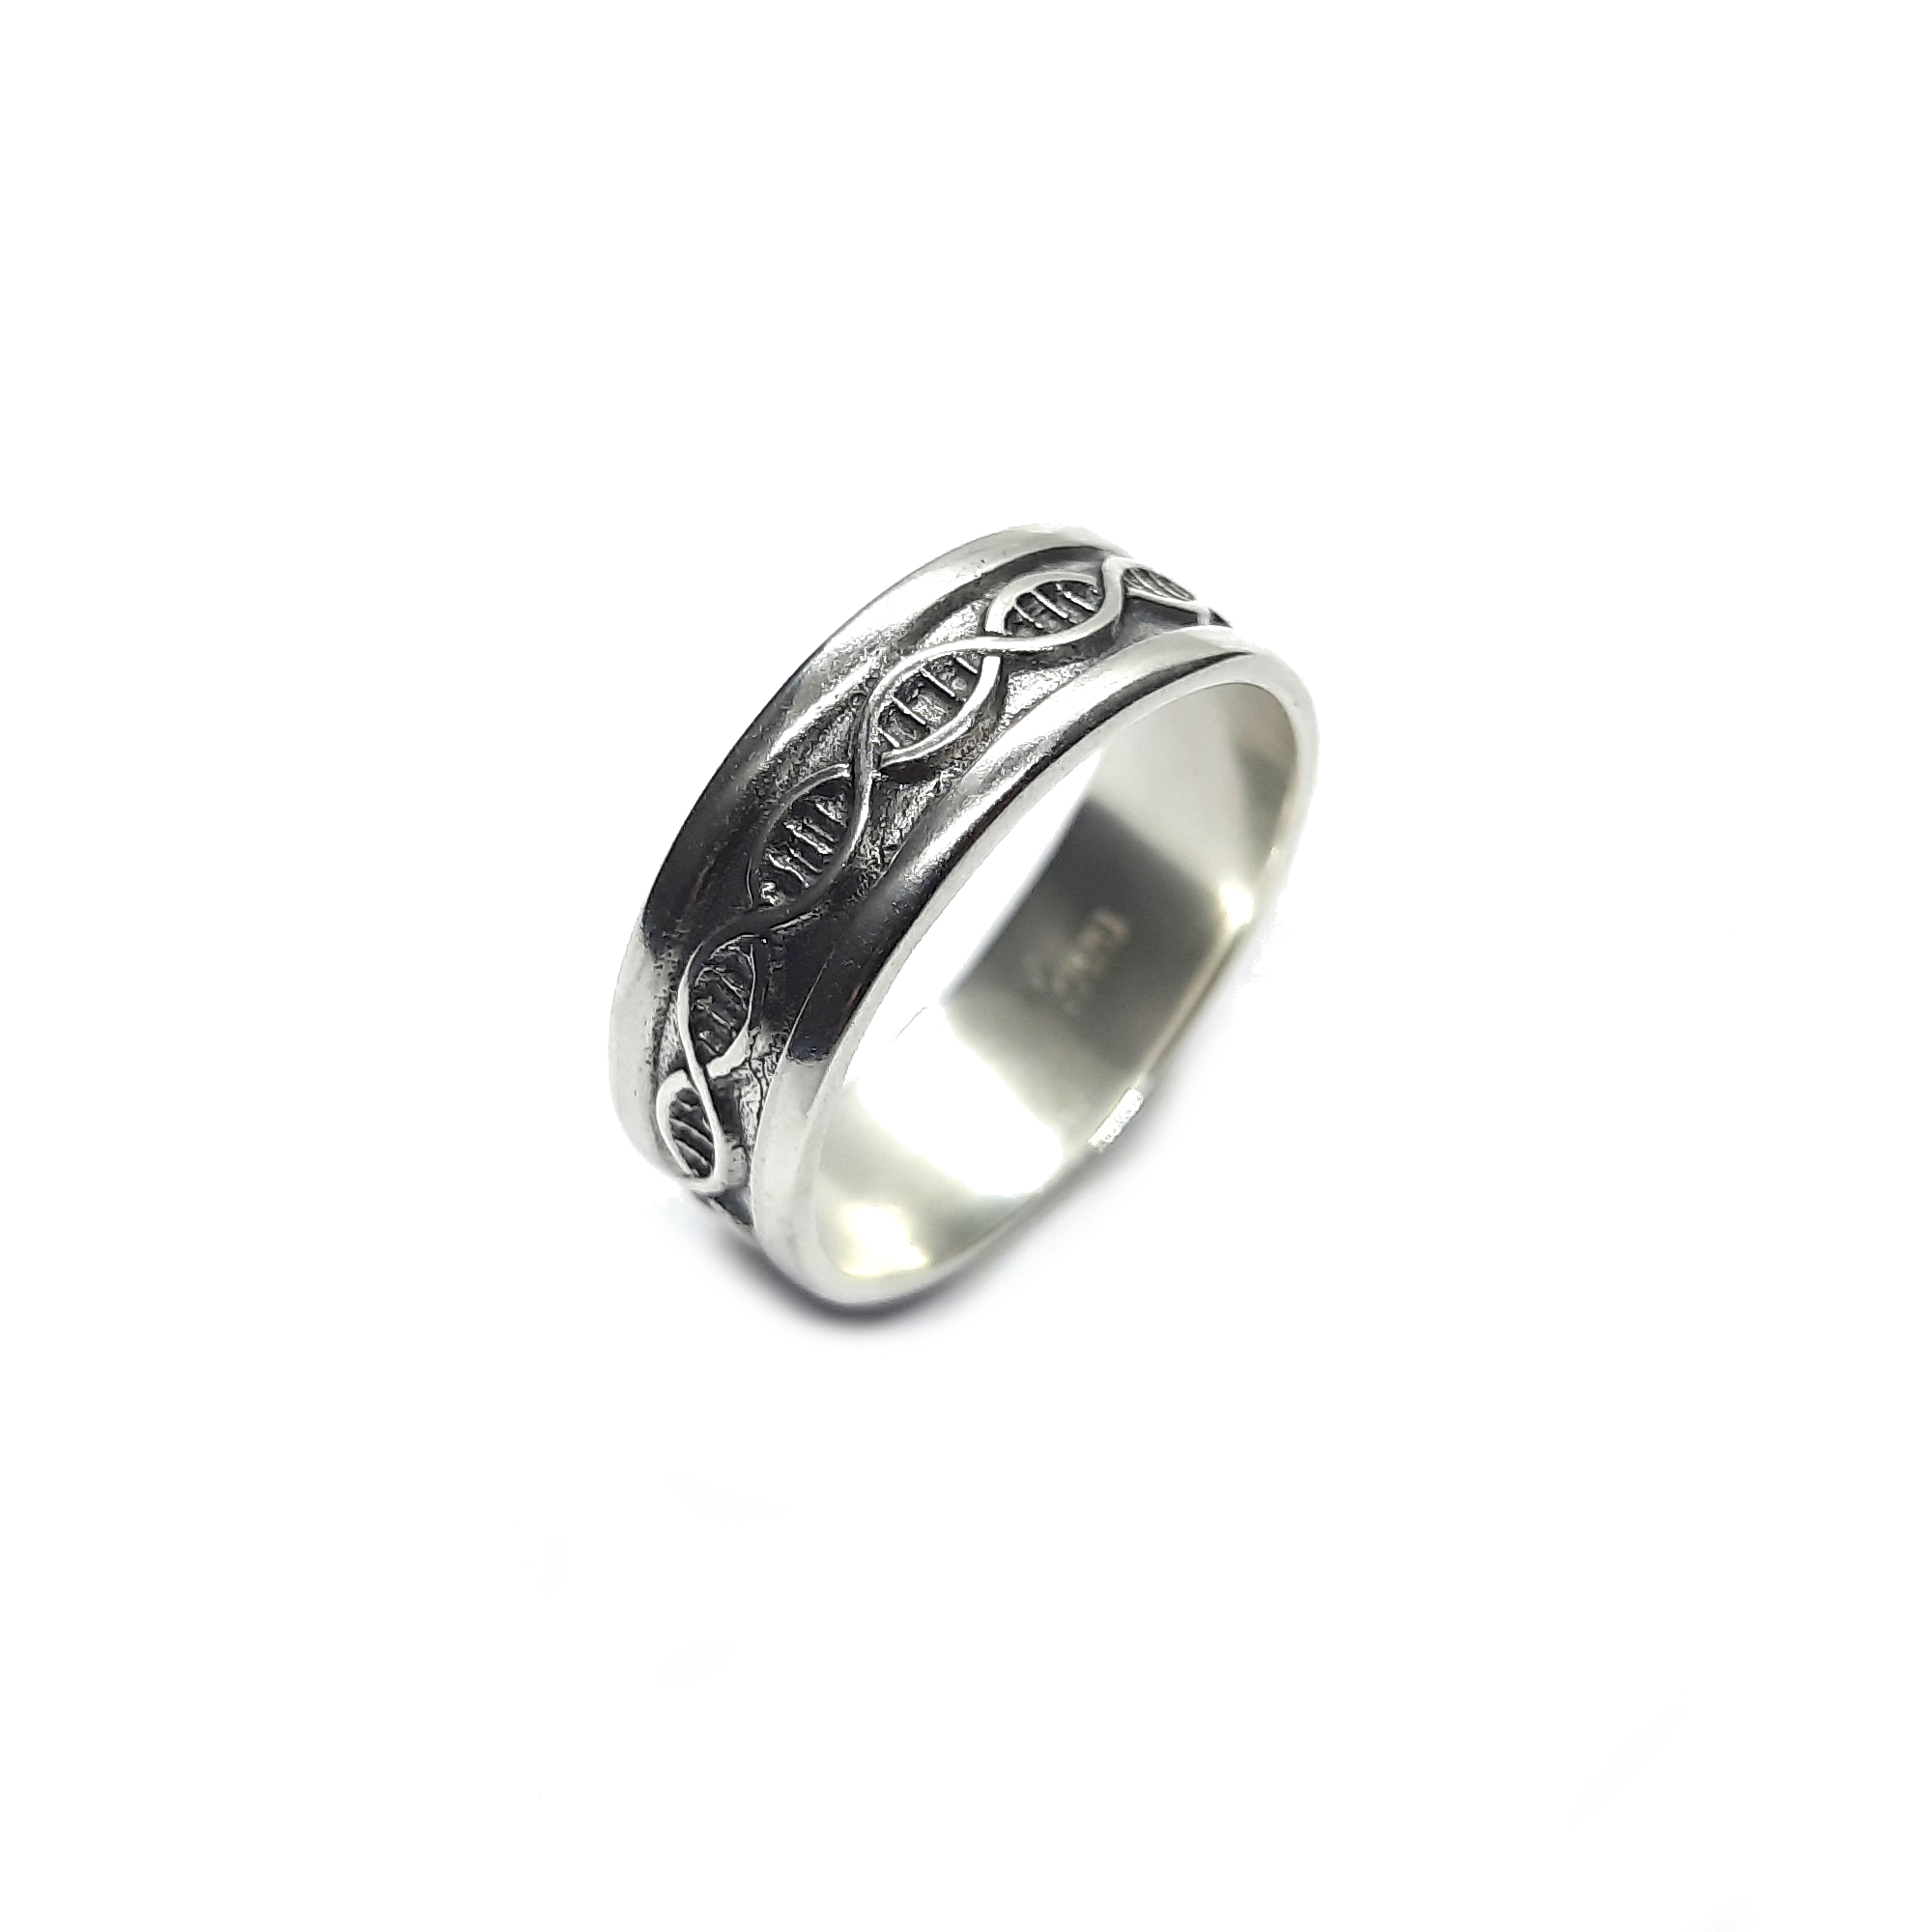 Silver ring - R002220